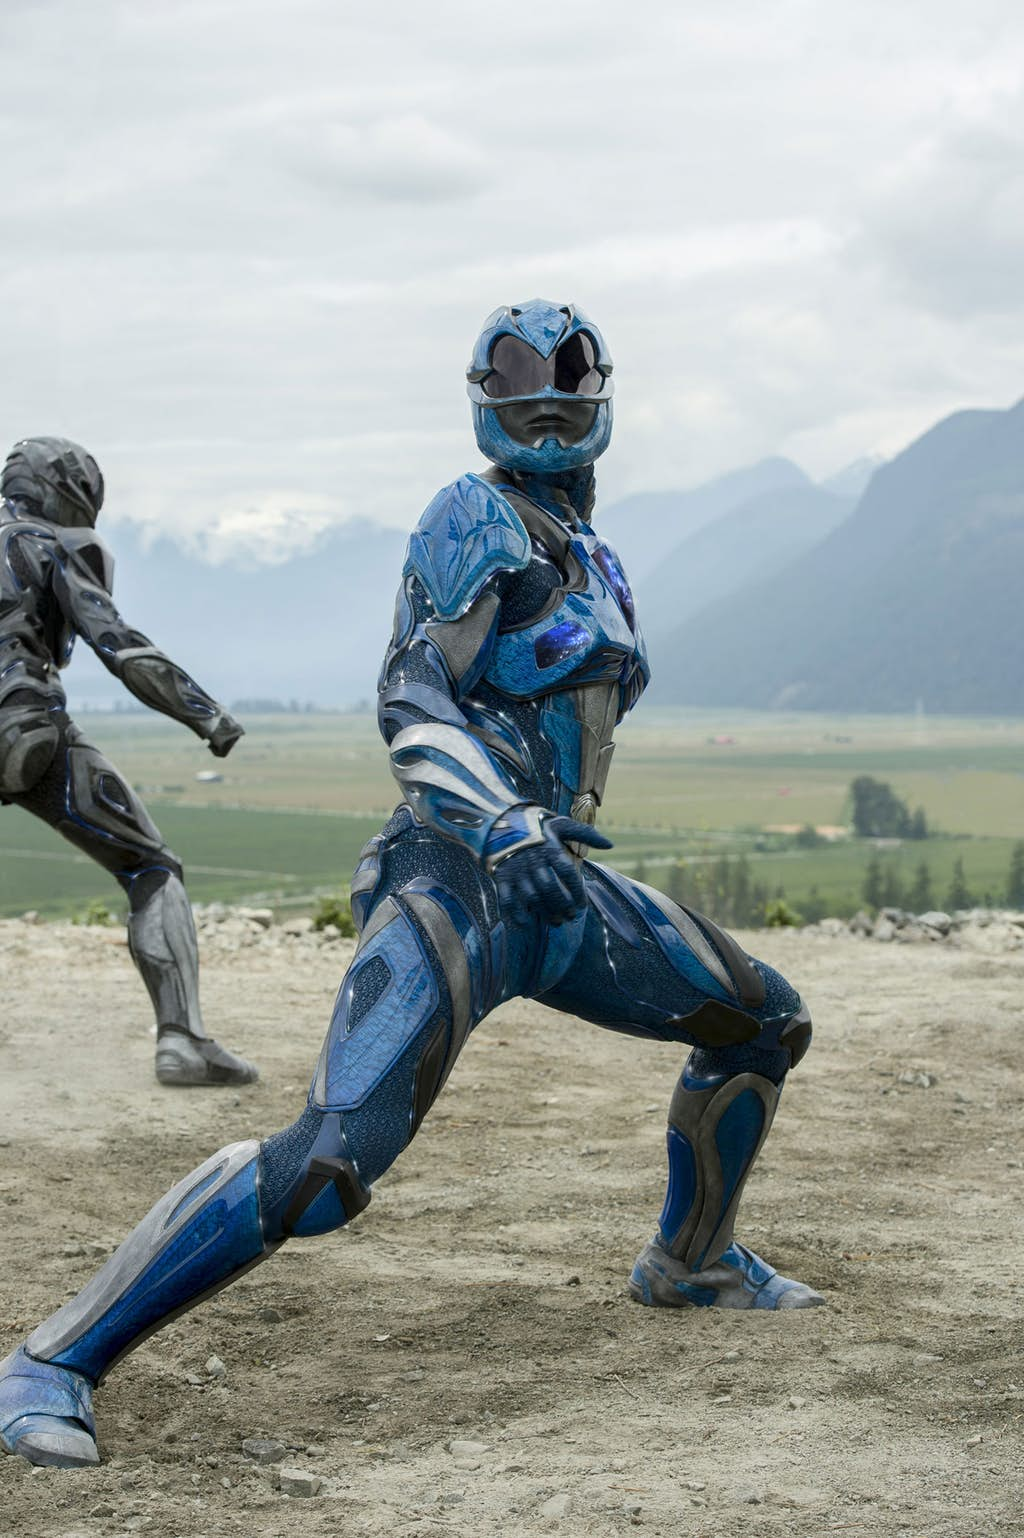 New Power Rangers Images – Taylor Network of Podcasts